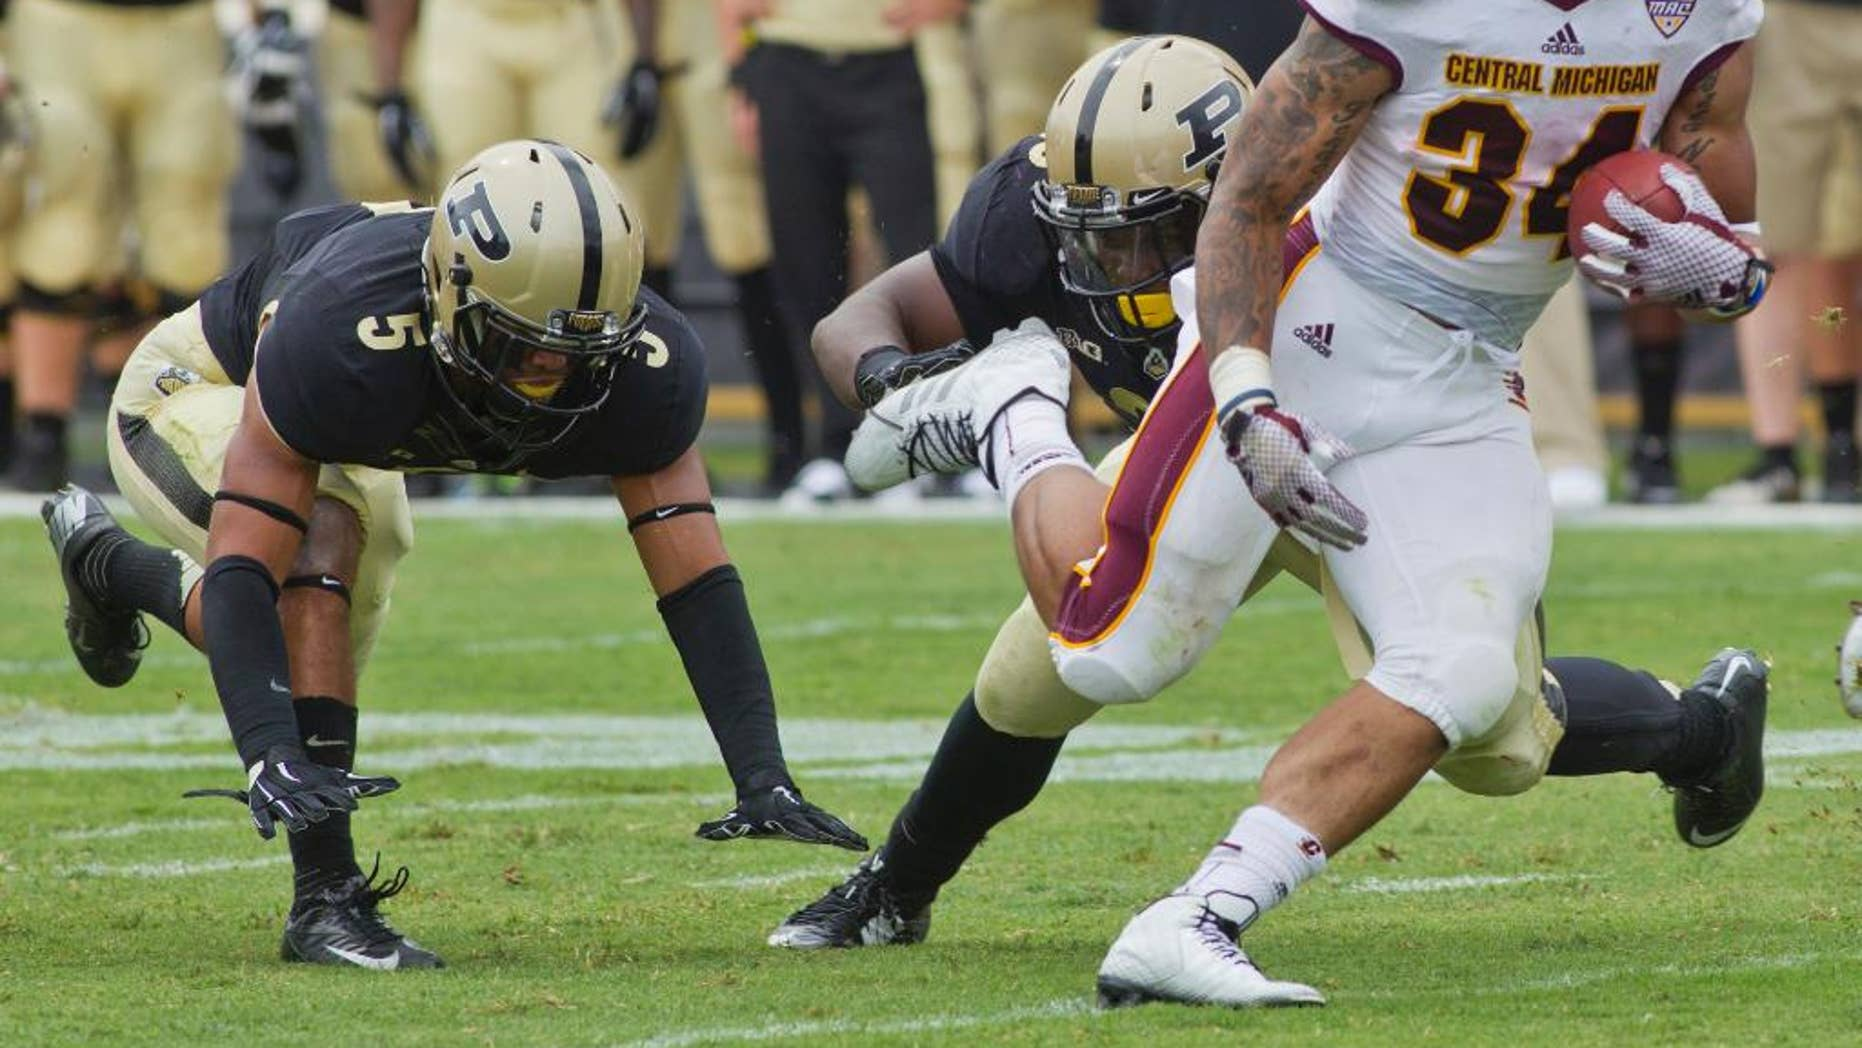 Central Michigan's Thomas Rawls eludes Purdue tacklers during an NCAA college football game  Saturday, Sept.  6, 2014, at Ross-Ade Stadium in West Lafayette. Central Michigan won 38-17. (AP Photo/Journal & Courier, Michael Heinz)